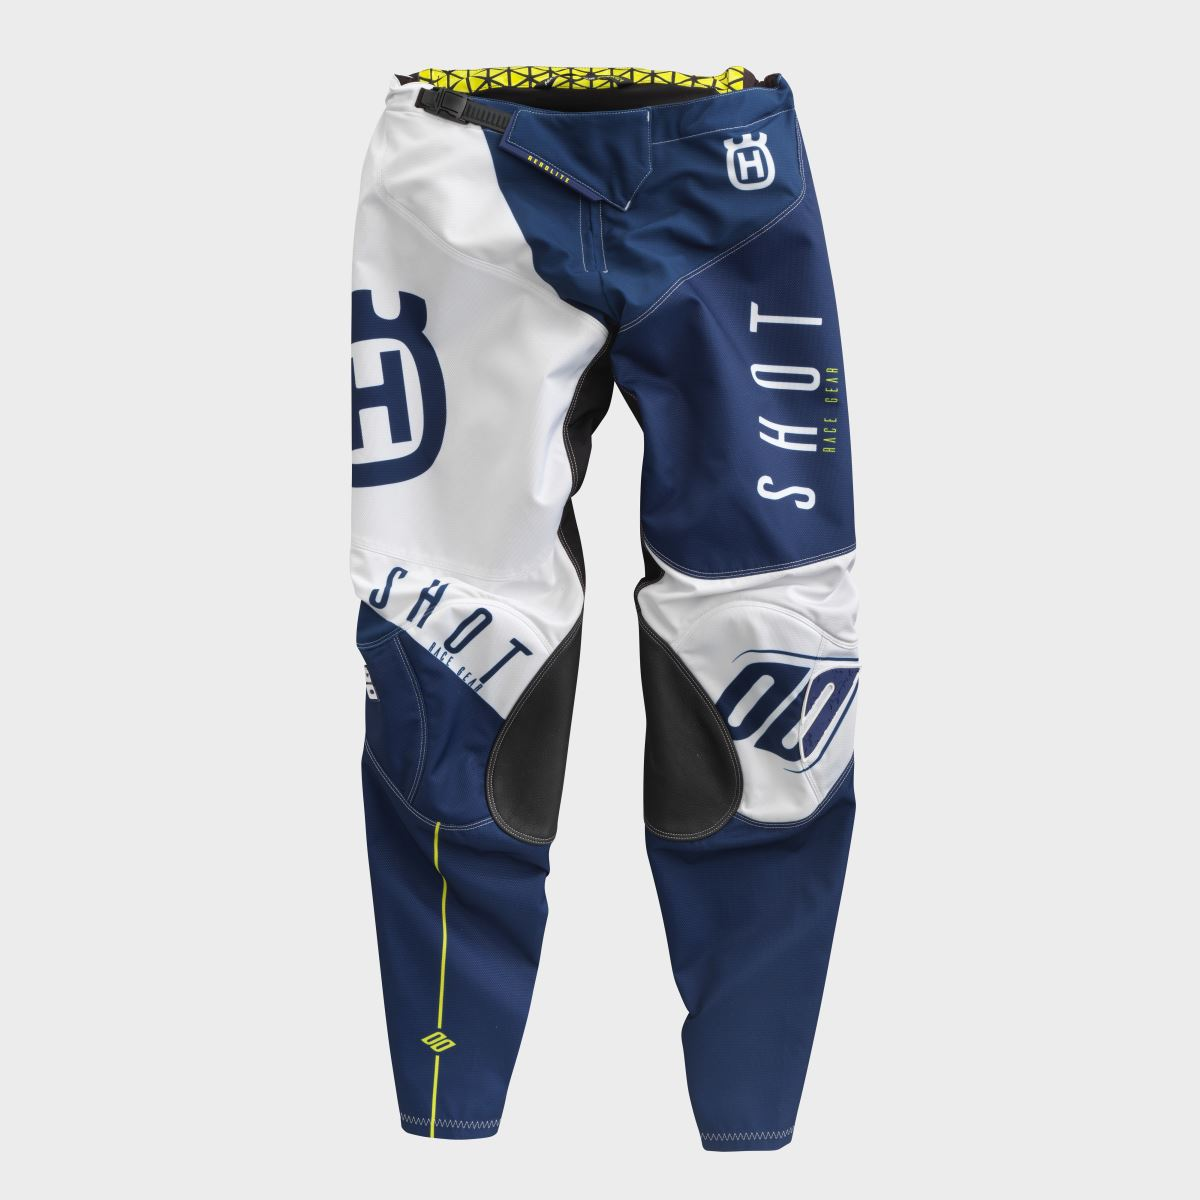 191009 HUSQVARNA MOTORCYCLES REPLICA FLASH COLLECTION 2019 BY SHOT - PANTS front